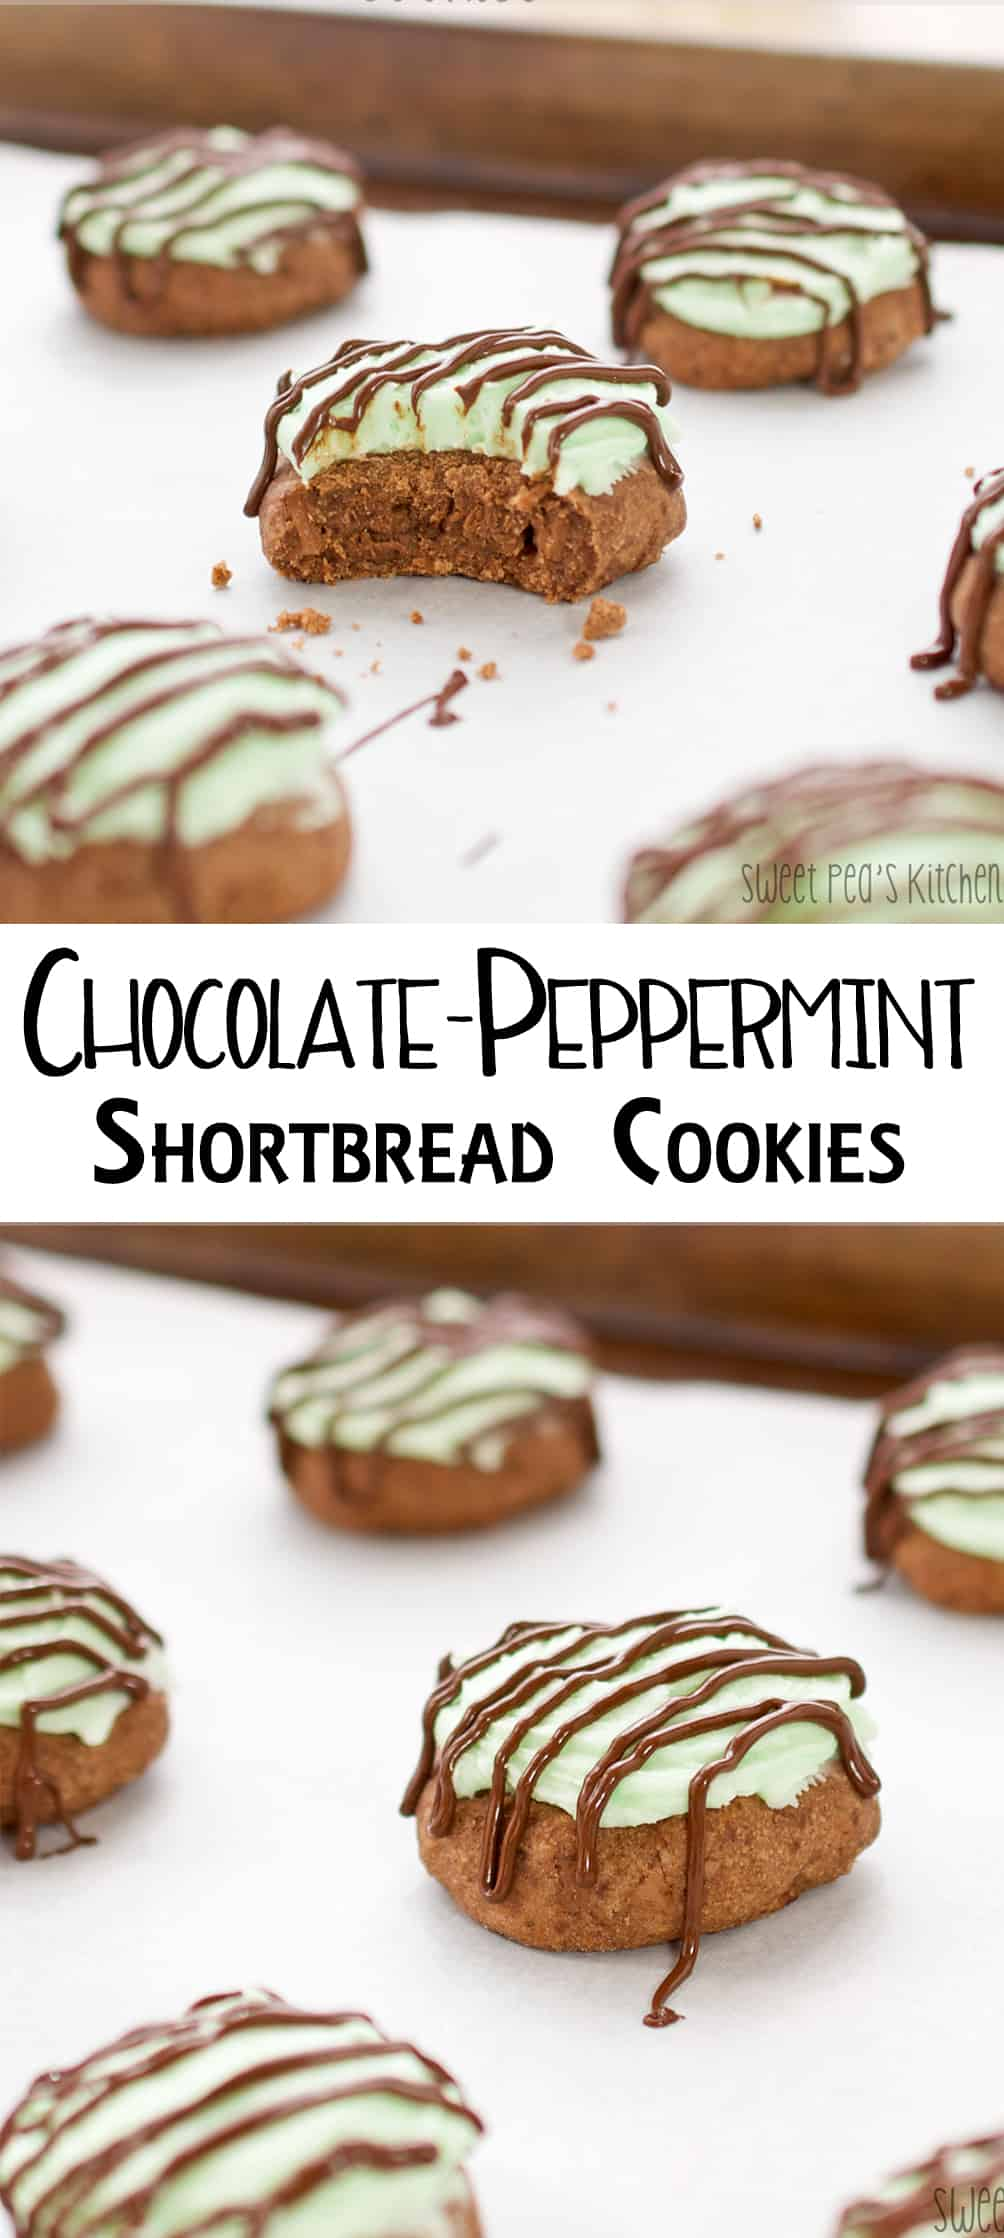 Chocolate-Peppermint Shortbread Cookies